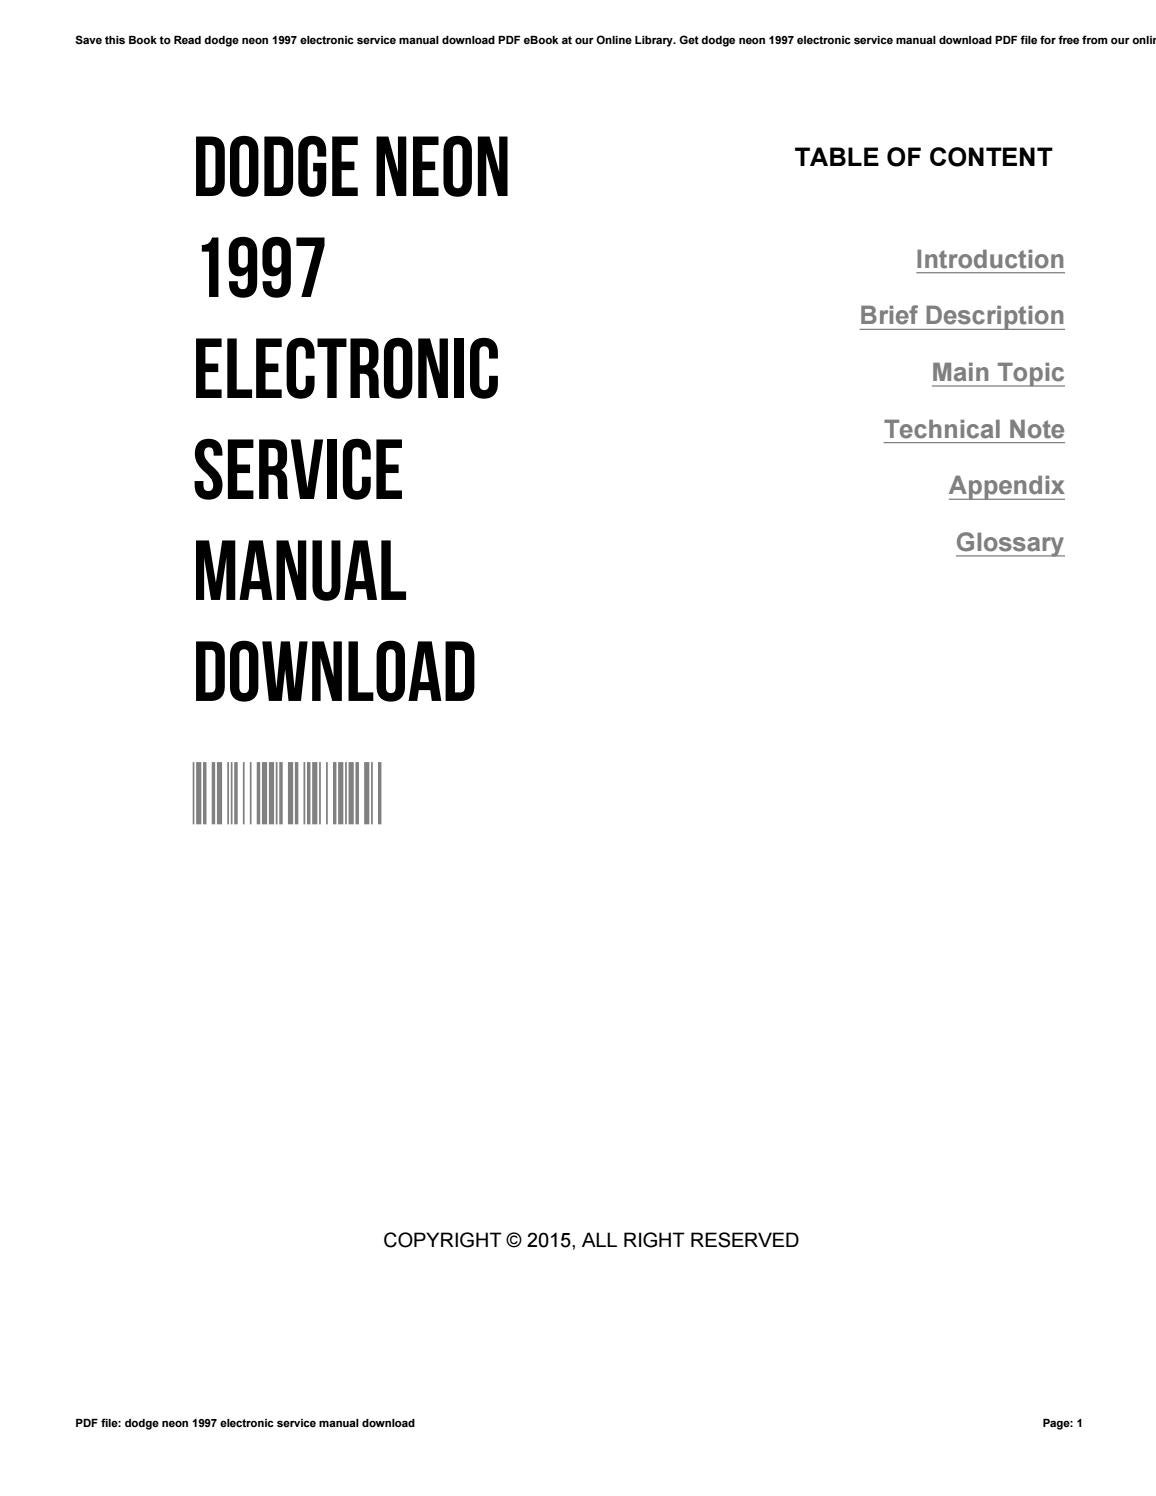 Dodge neon 1997 electronic service manual download by